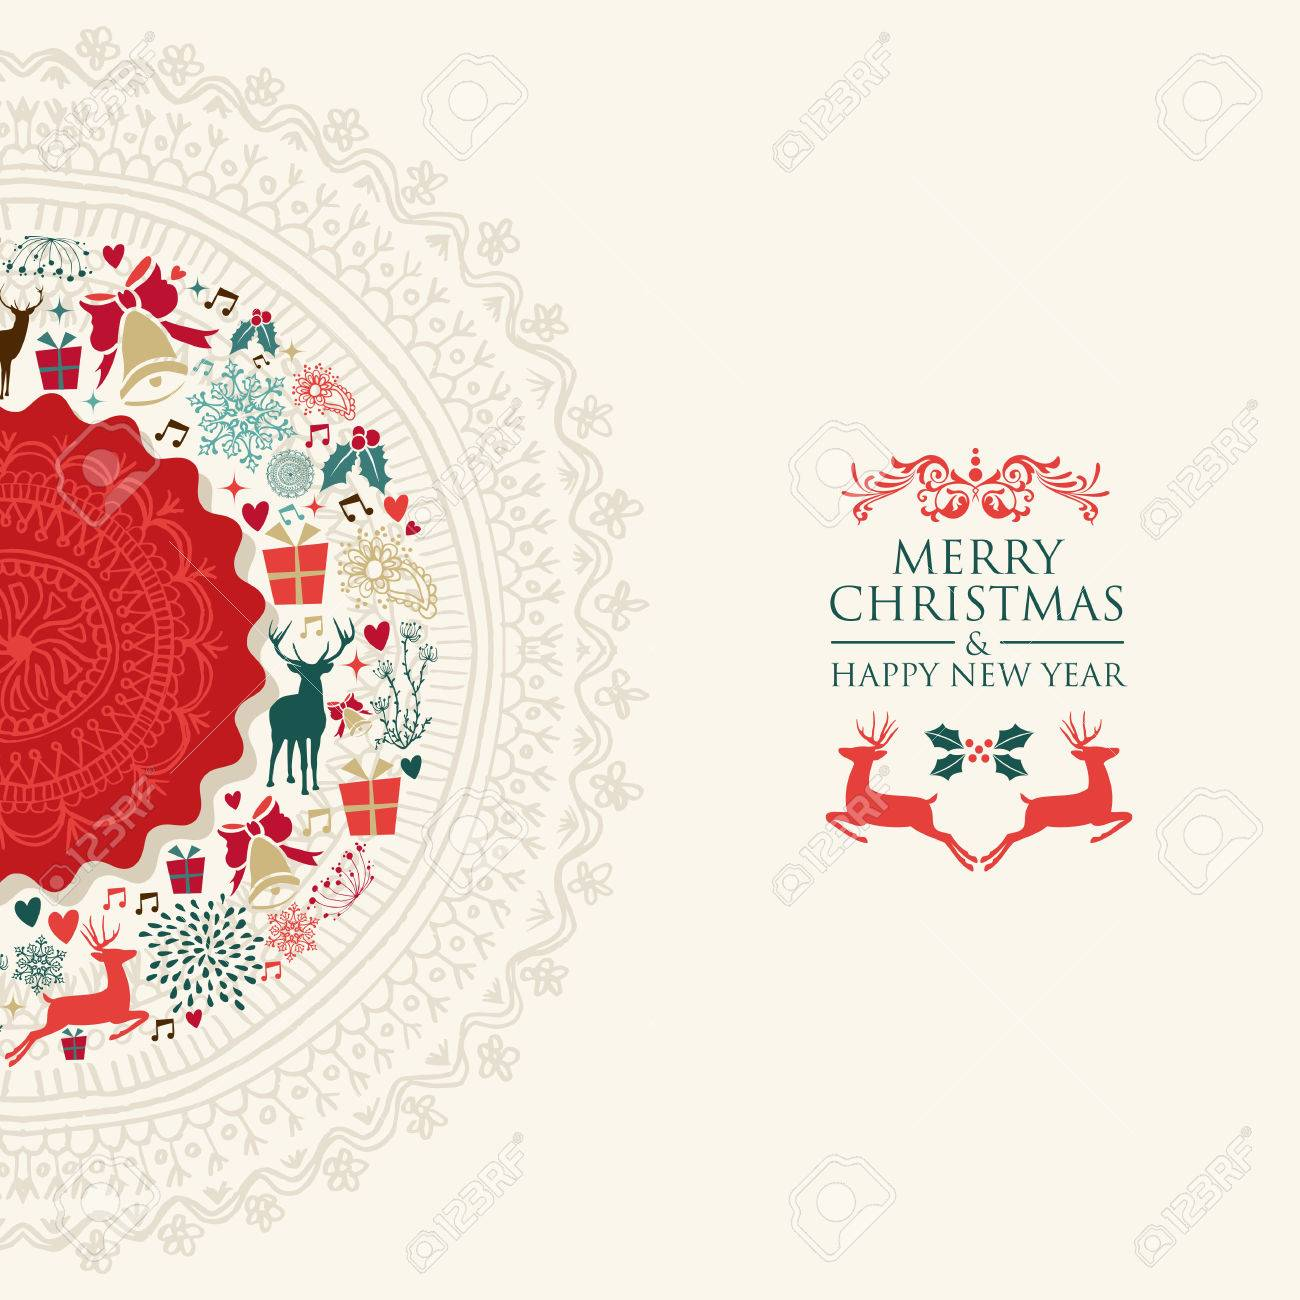 Merry christmas and happy new year greeting card eps10 vector merry christmas and happy new year greeting card eps10 vector file organized in layers for m4hsunfo